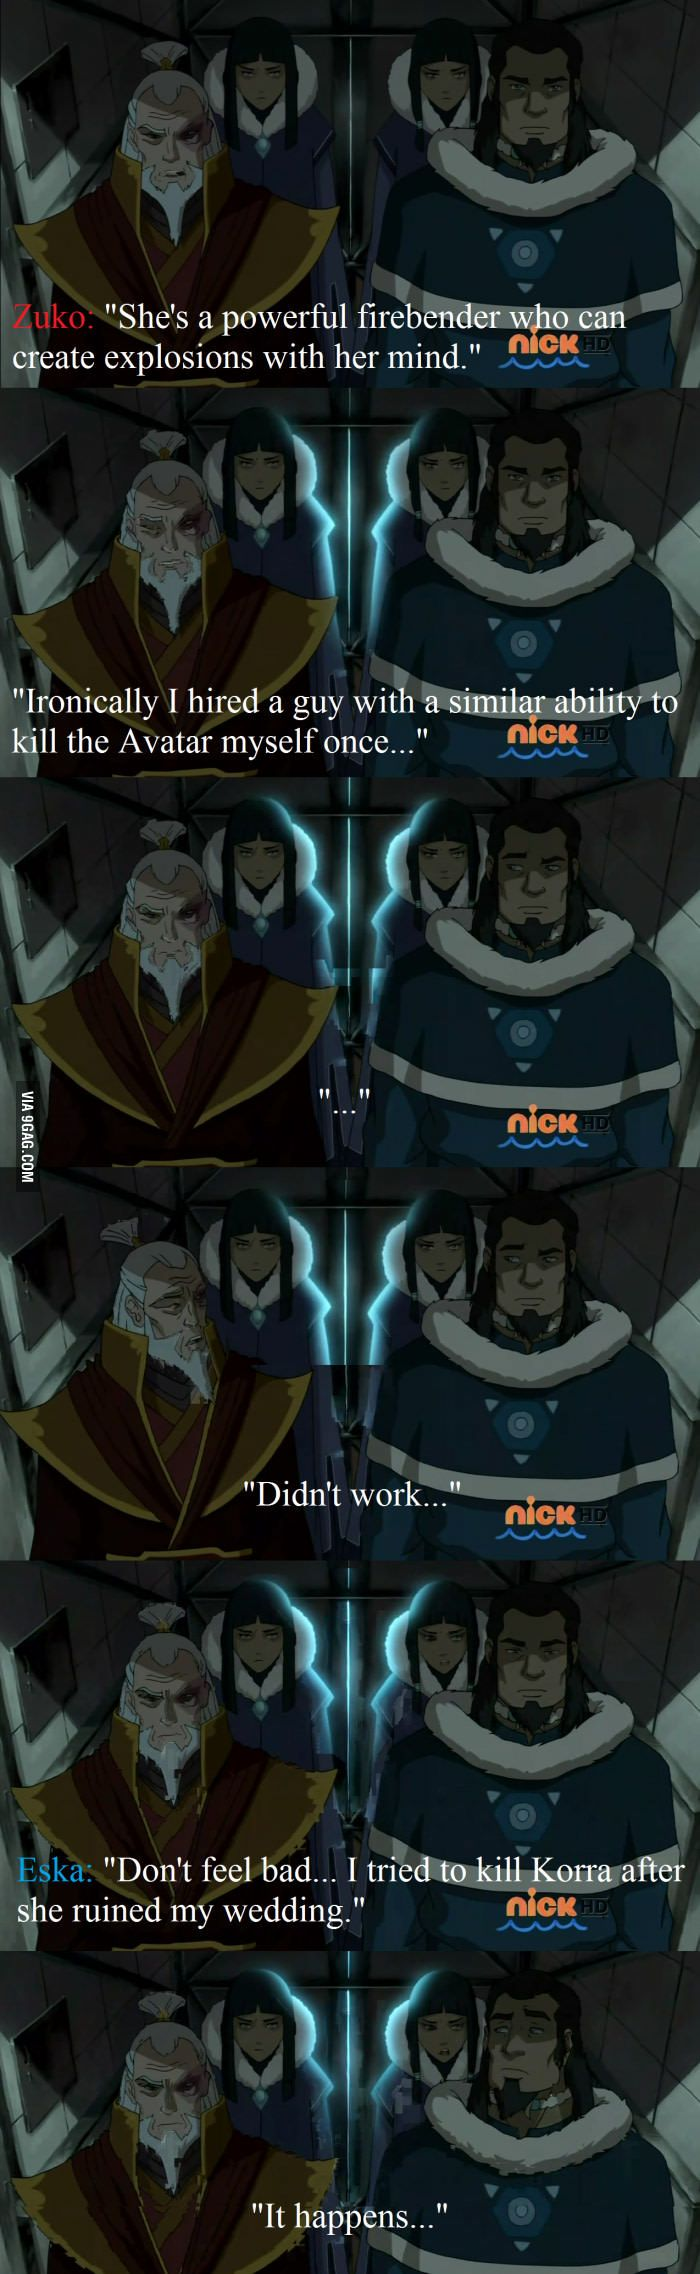 4 Cool Korra pics, photos and memes. - SillyCool